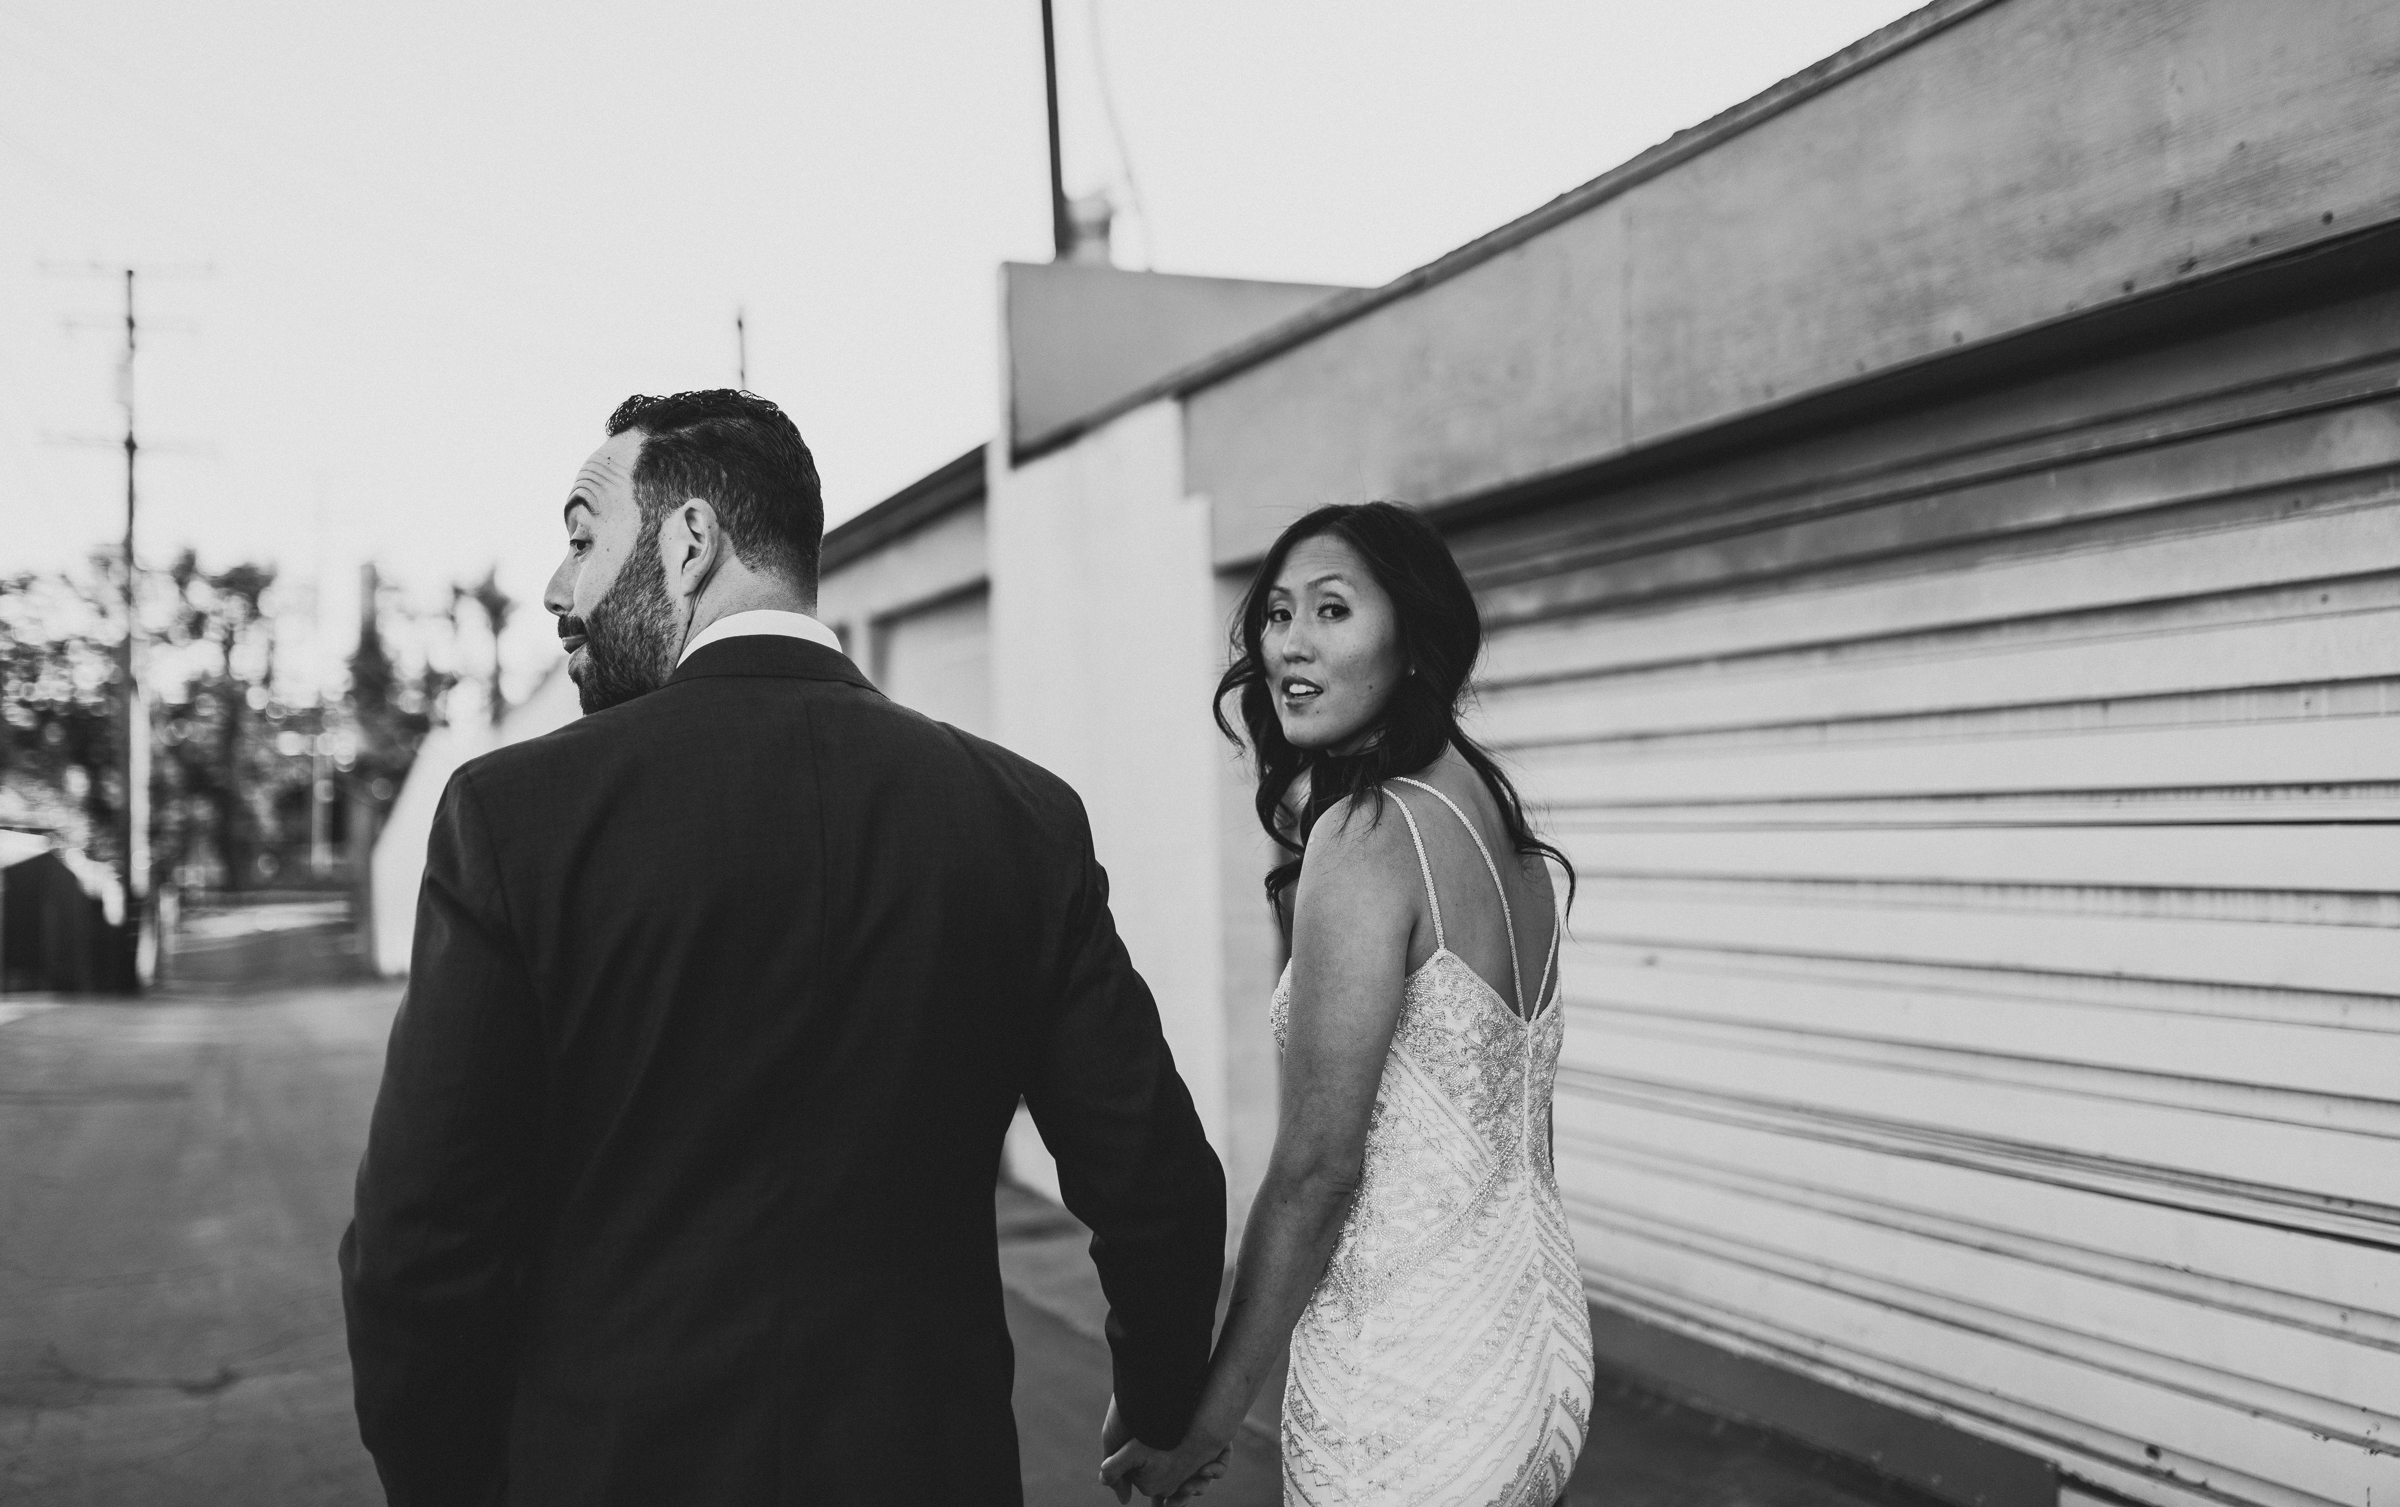 ©Isaiah + Taylor Photography - Big Door Studios Wedding, El Segundo, Los Angeles Wedding Photographer-57.jpg